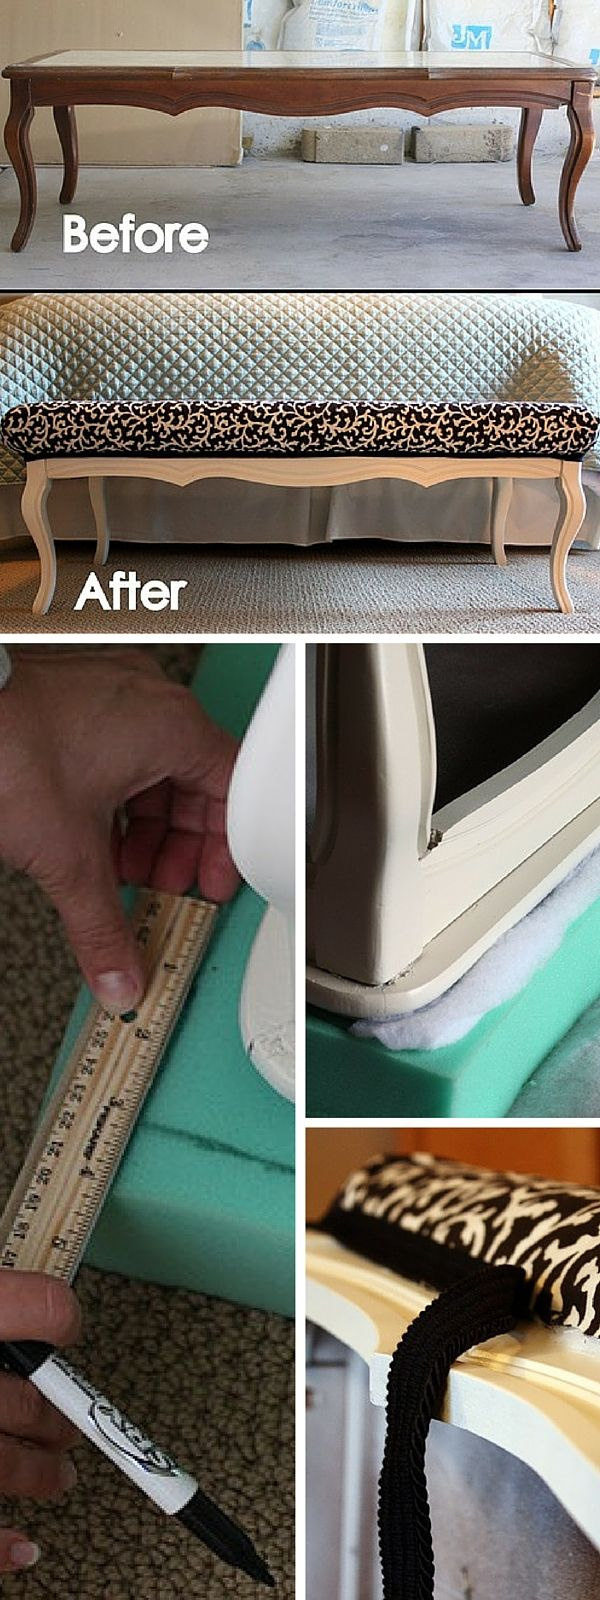 Reupholster Couch Diy Simple